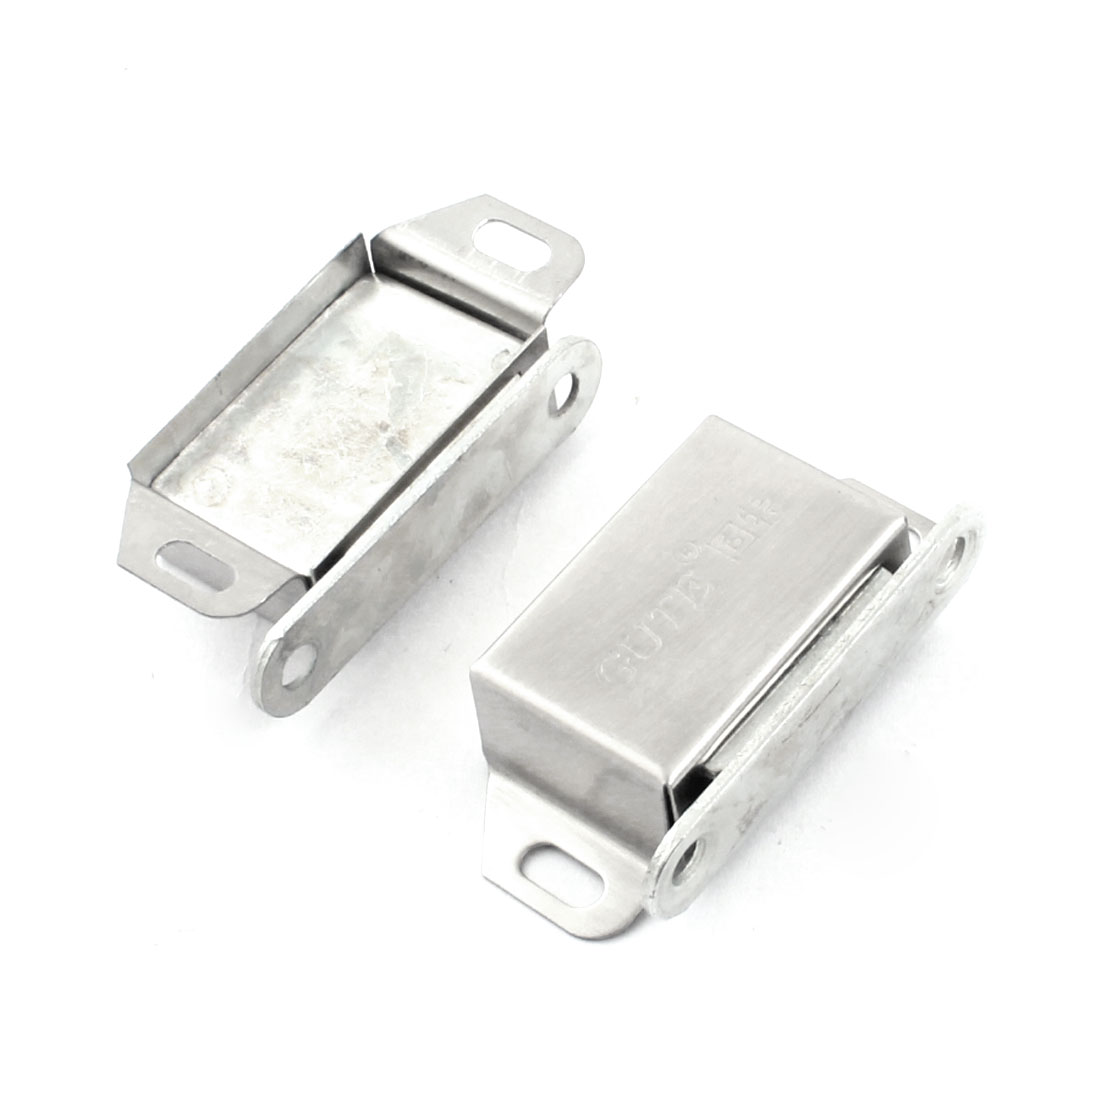 "2 Pcs Stainless Steel Cupboard Door Magnetic Catch Latch 2.1"" Length"